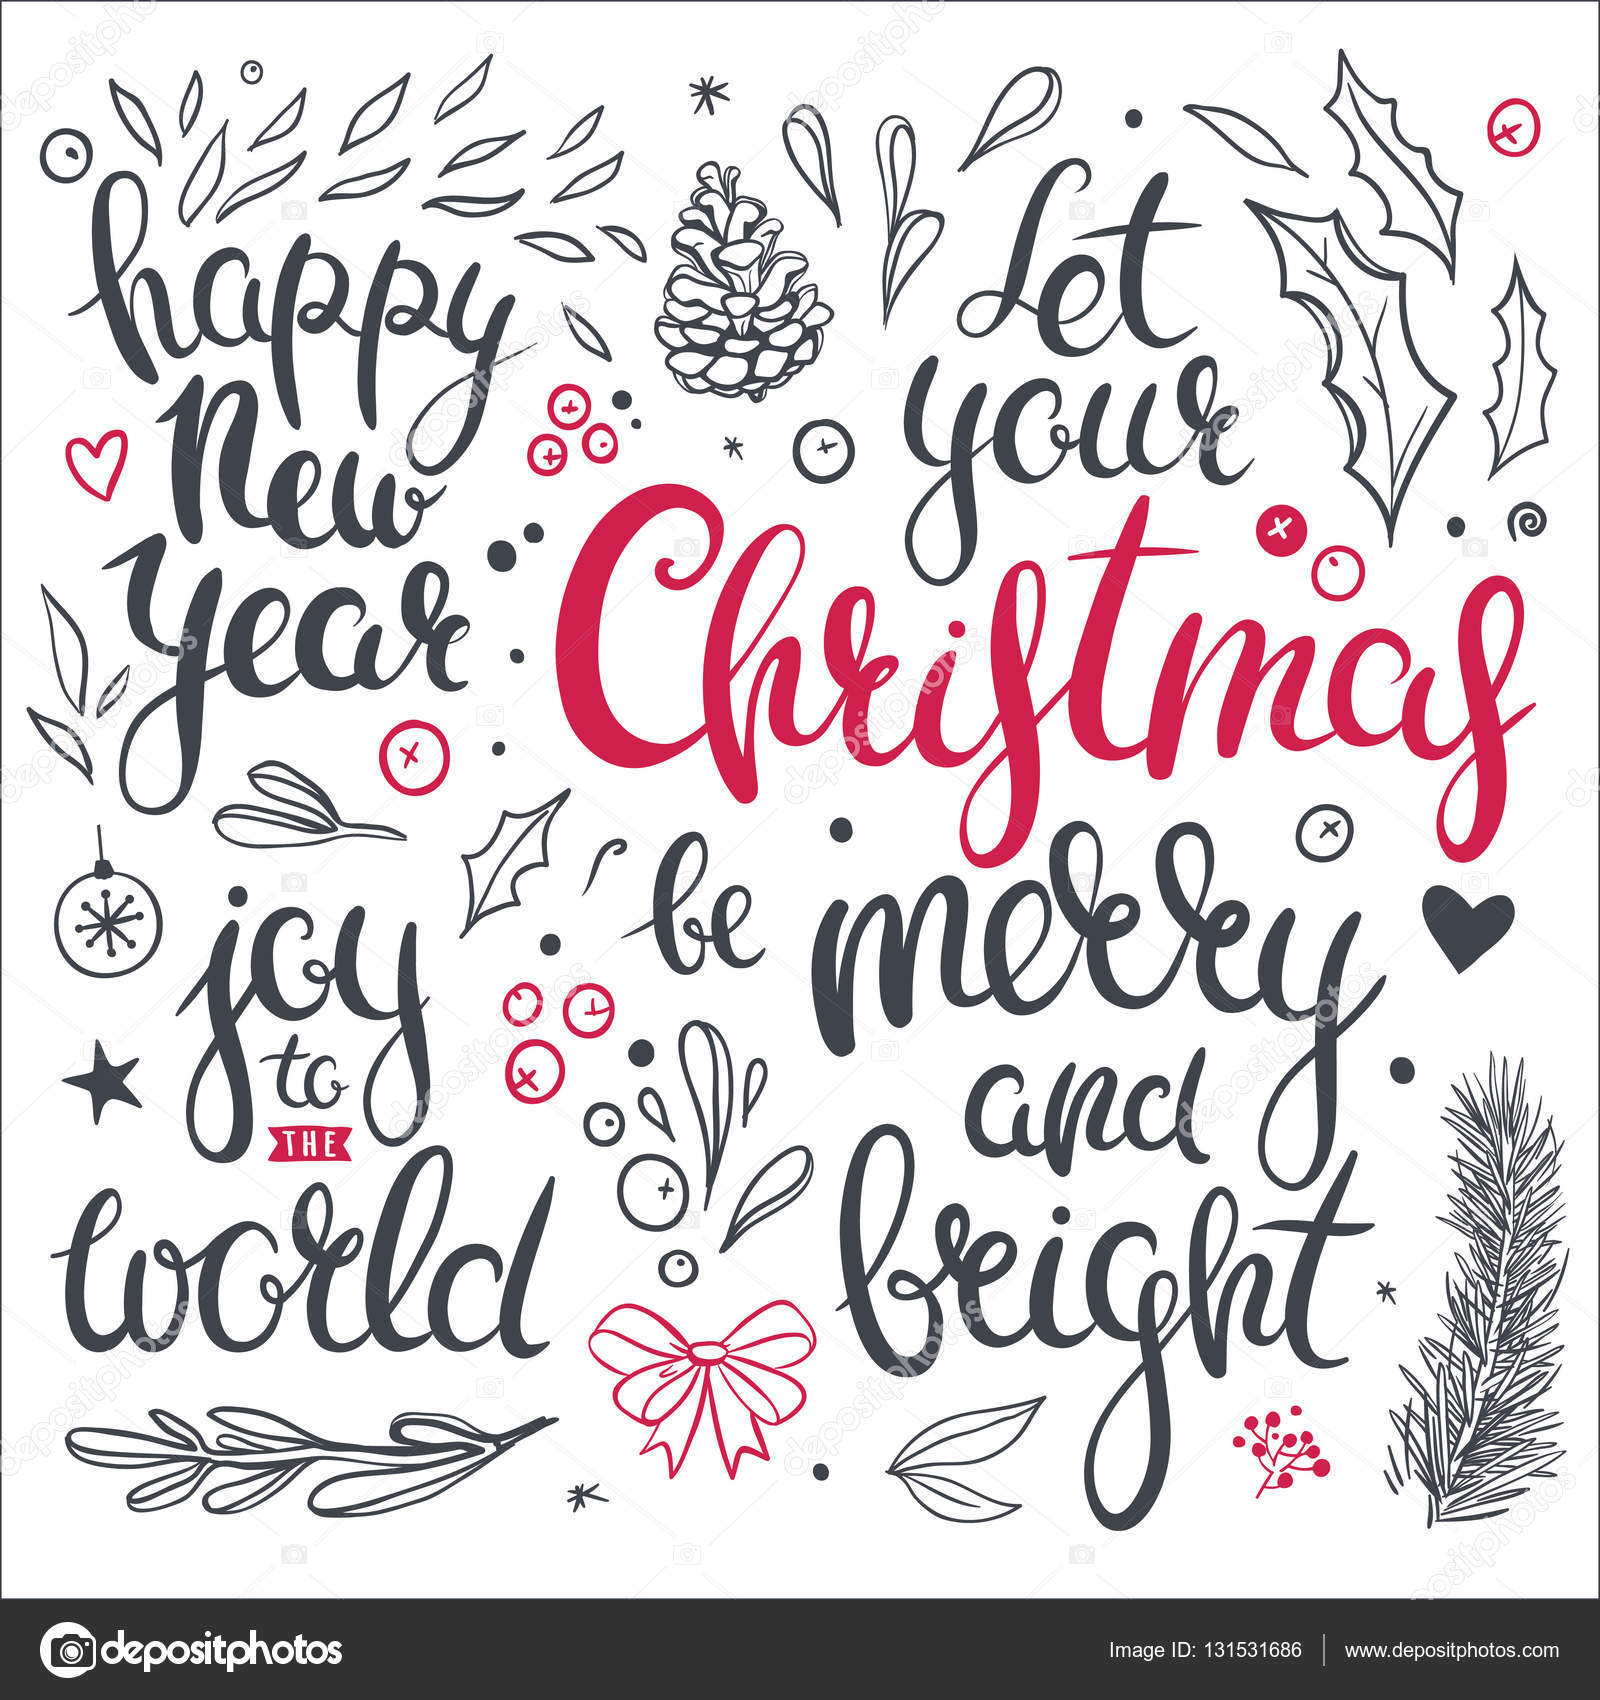 christmas overlays and clip art stock vector - Christmas Overlays